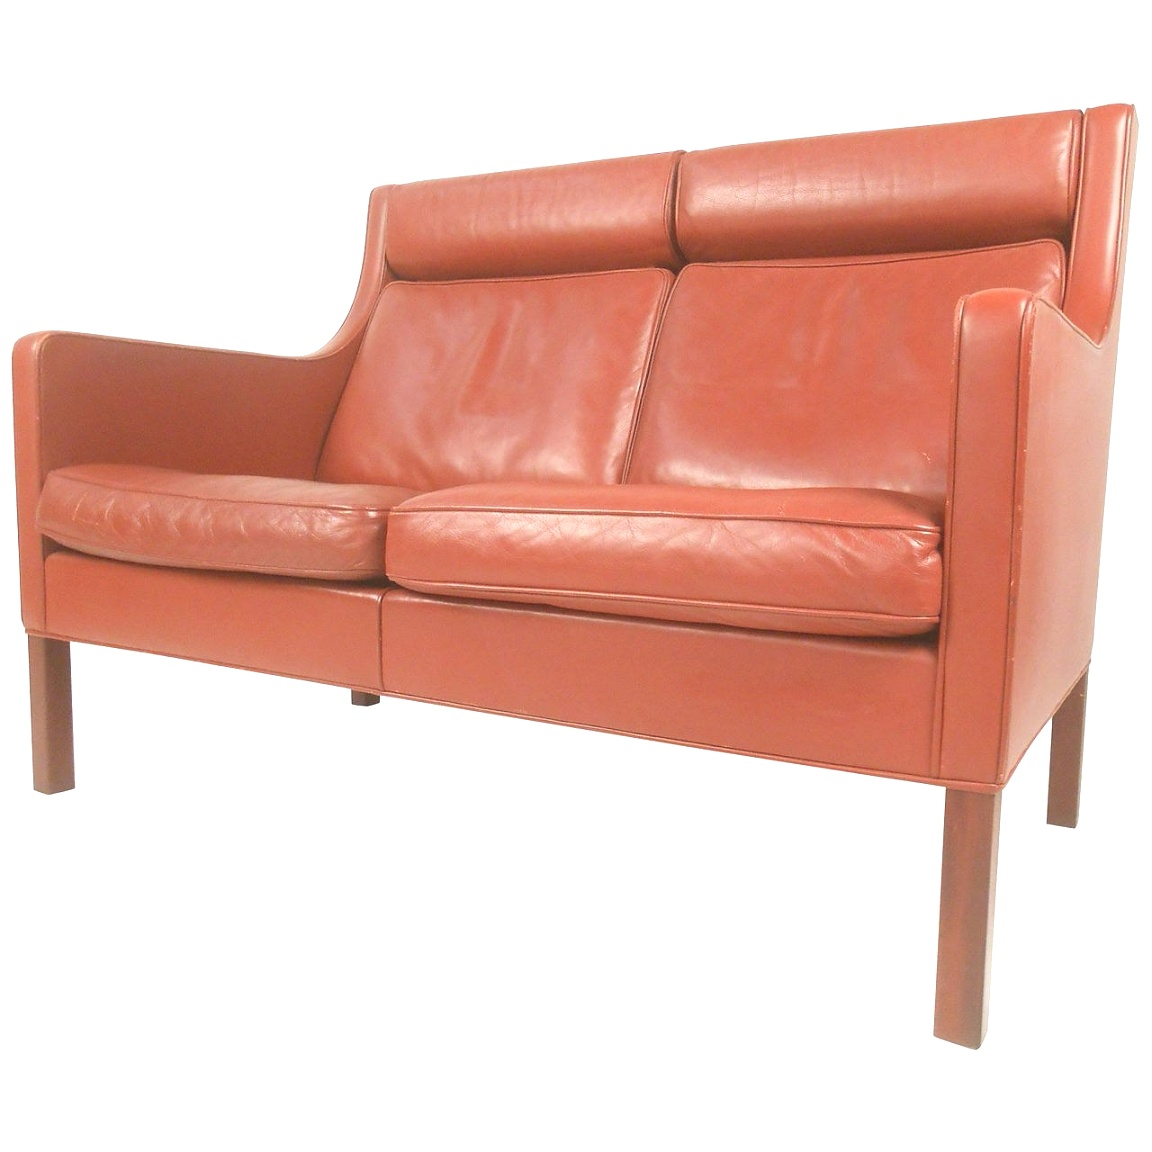 mid century modern loveseat | Mid-Century Modern Leather Fredericia Loveseat by Borge Mogensen ..